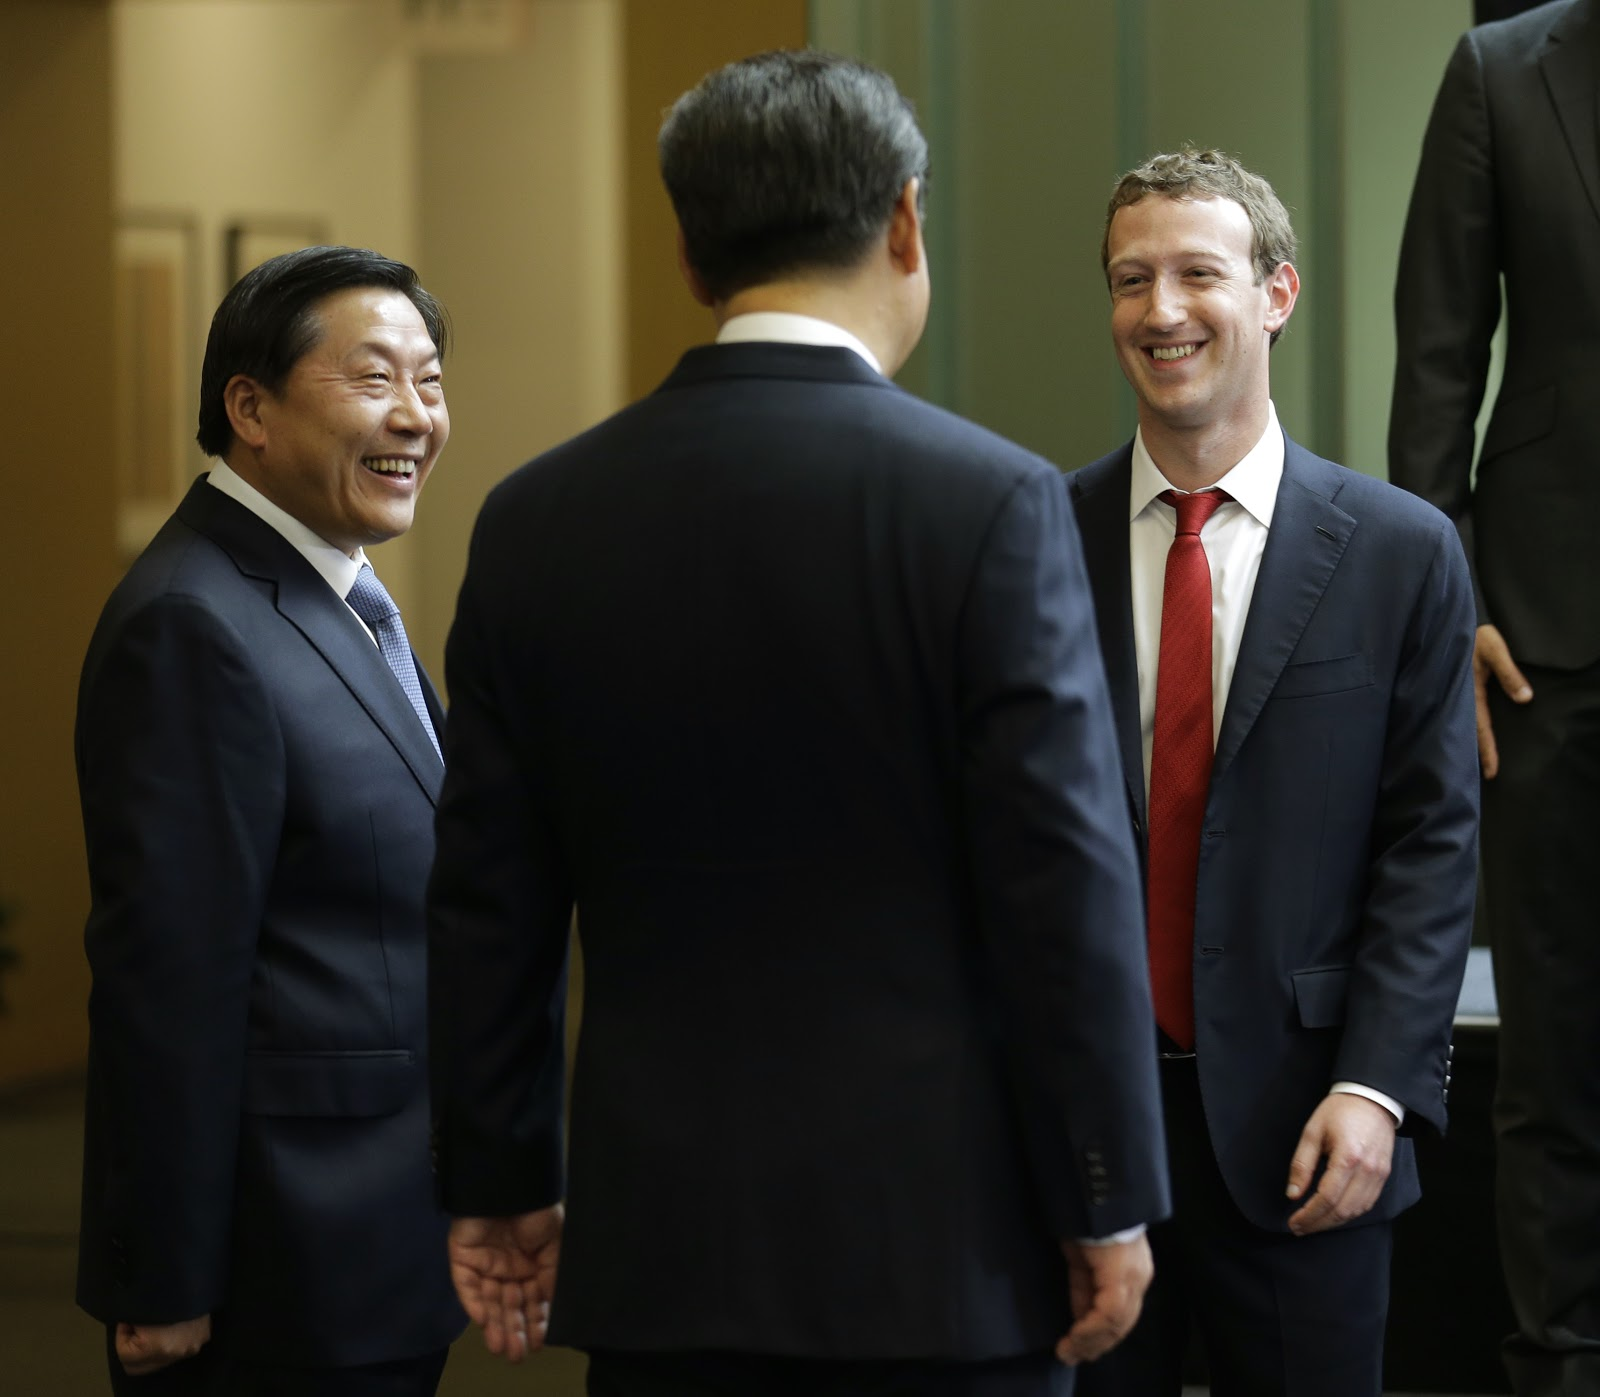 Chinese leader Xi Jinping (C) talks with Facebook Chief Executive Mark Zuckerberg (R) as Lu Wei, China's internet czar, looks on during a gathering of CEOs and other executives at the main campus of Microsoft Corp September 23, 2015 in Redmond, Washington. Xi and top executives from U.S. and Chinese companies discussed a range of issues, including trade relations, intellectual property protection, regulation transparency and clean energy, according to published reports.